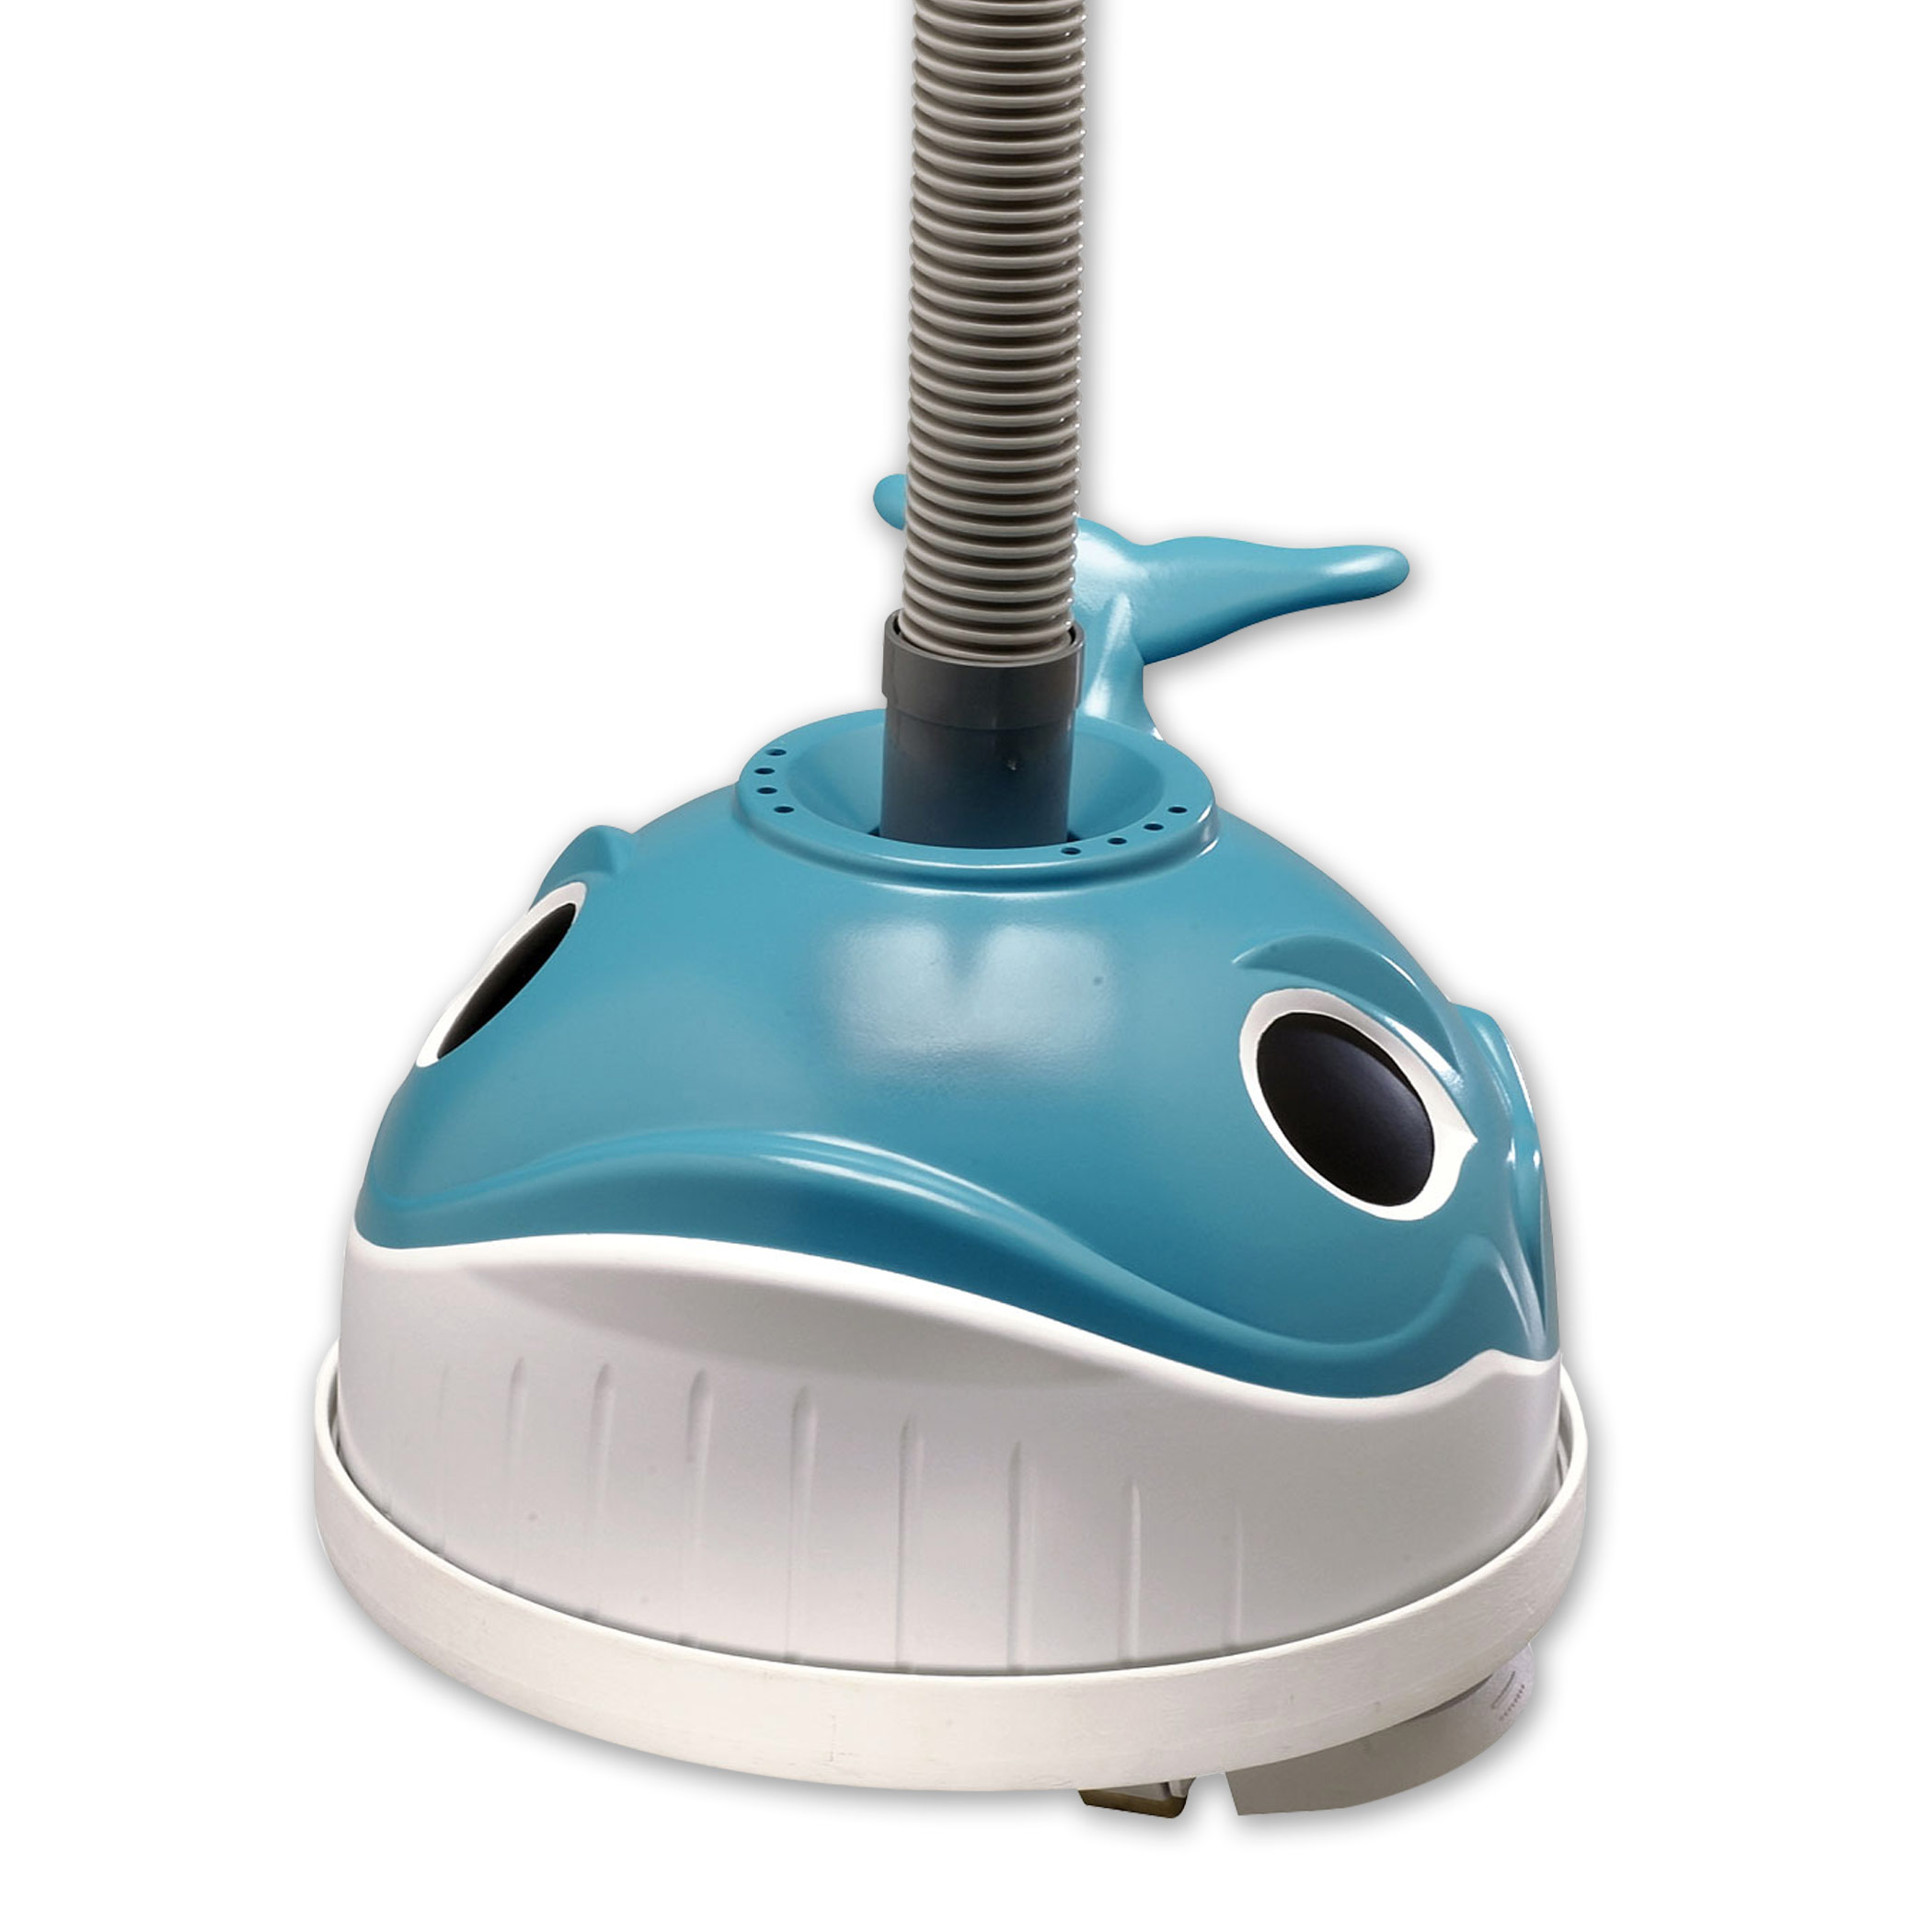 Hayward 900 Wanda the Whale Automatic Above Ground Pool Cleaner by